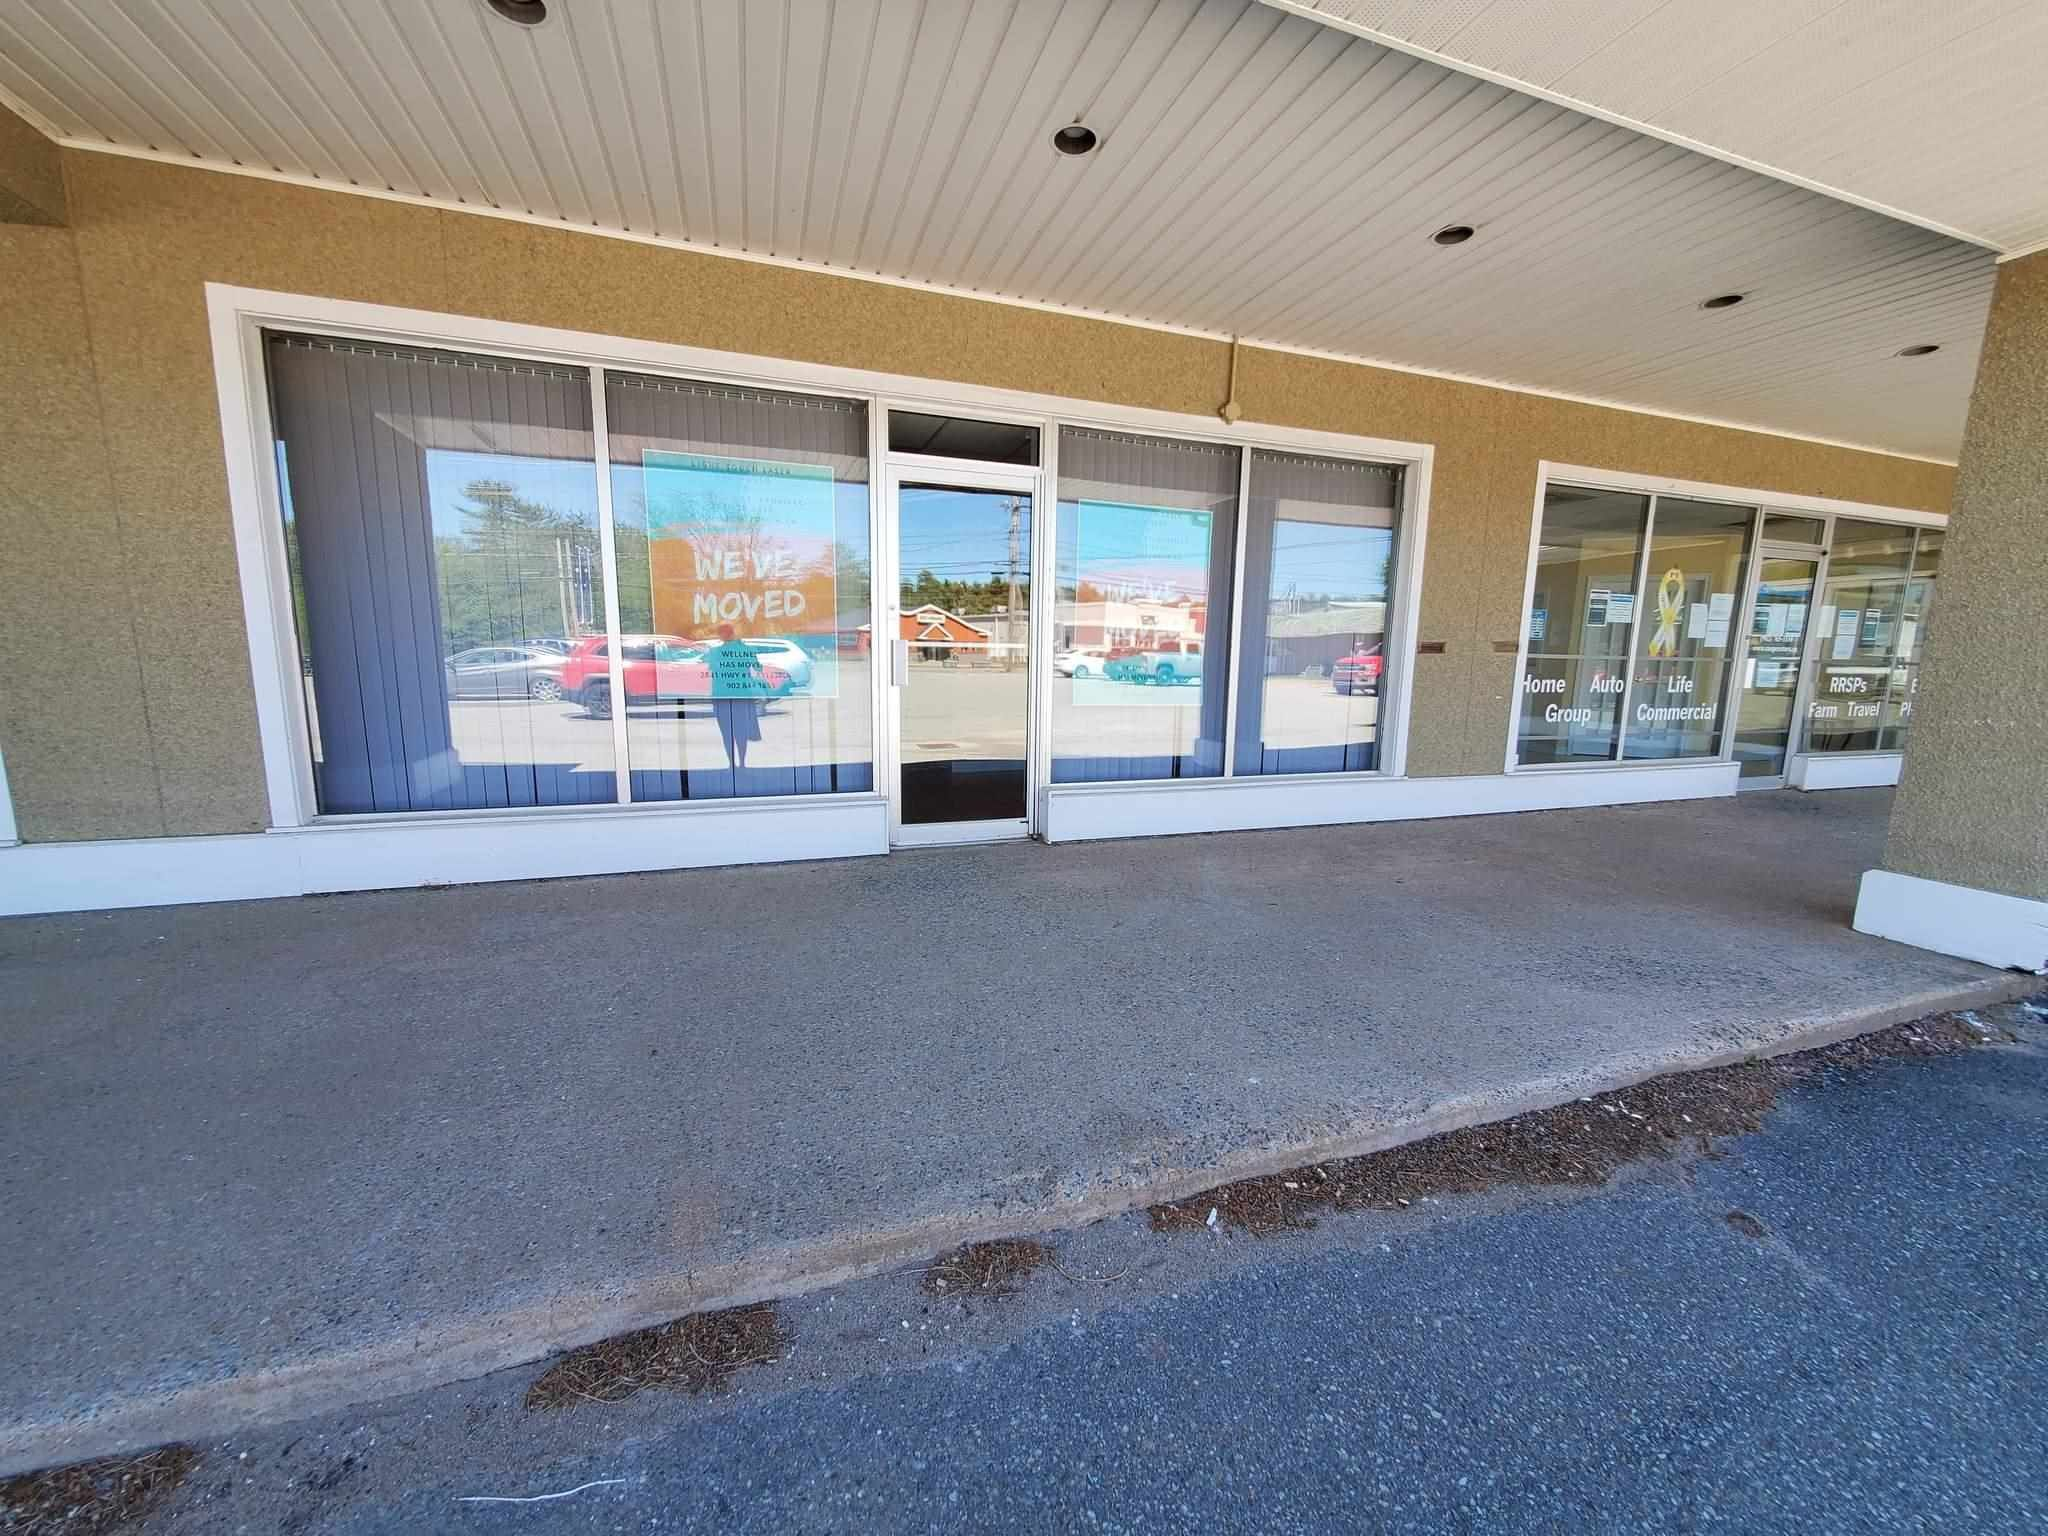 Main Photo: E 780 Central Avenue in Greenwood: 404-Kings County Commercial for lease (Annapolis Valley)  : MLS®# 202114829